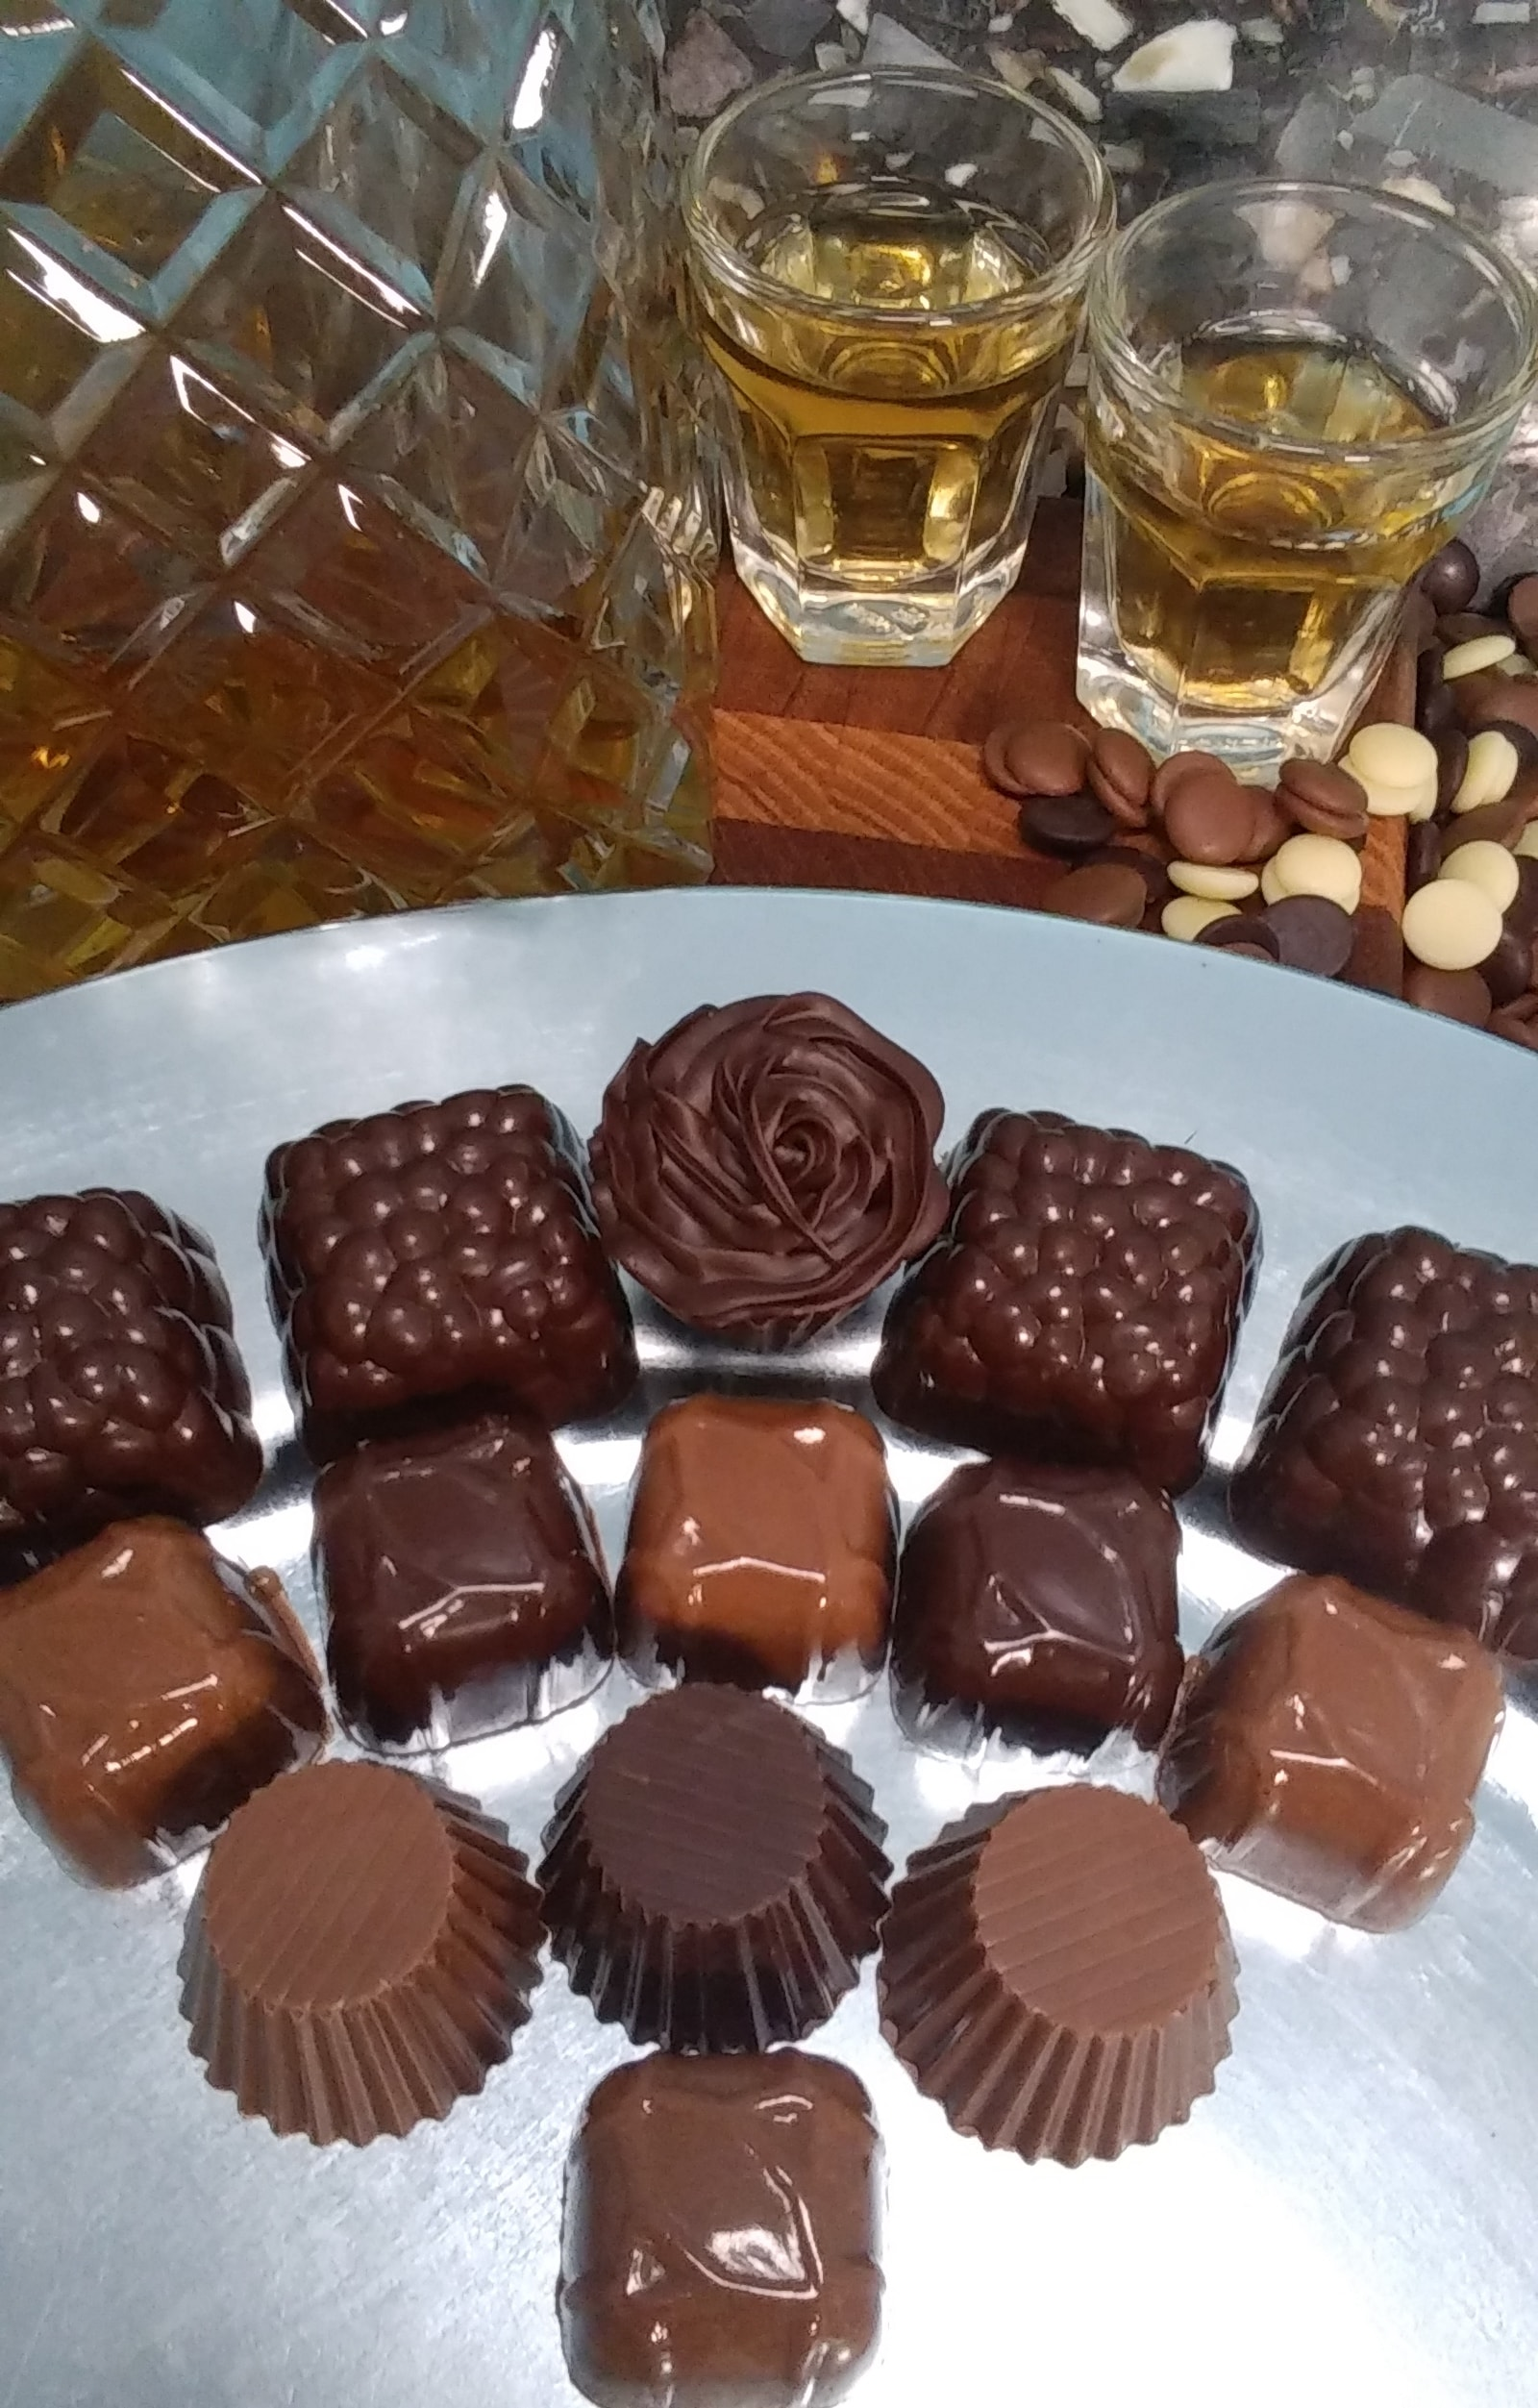 Makers Mark 46 Chocolates